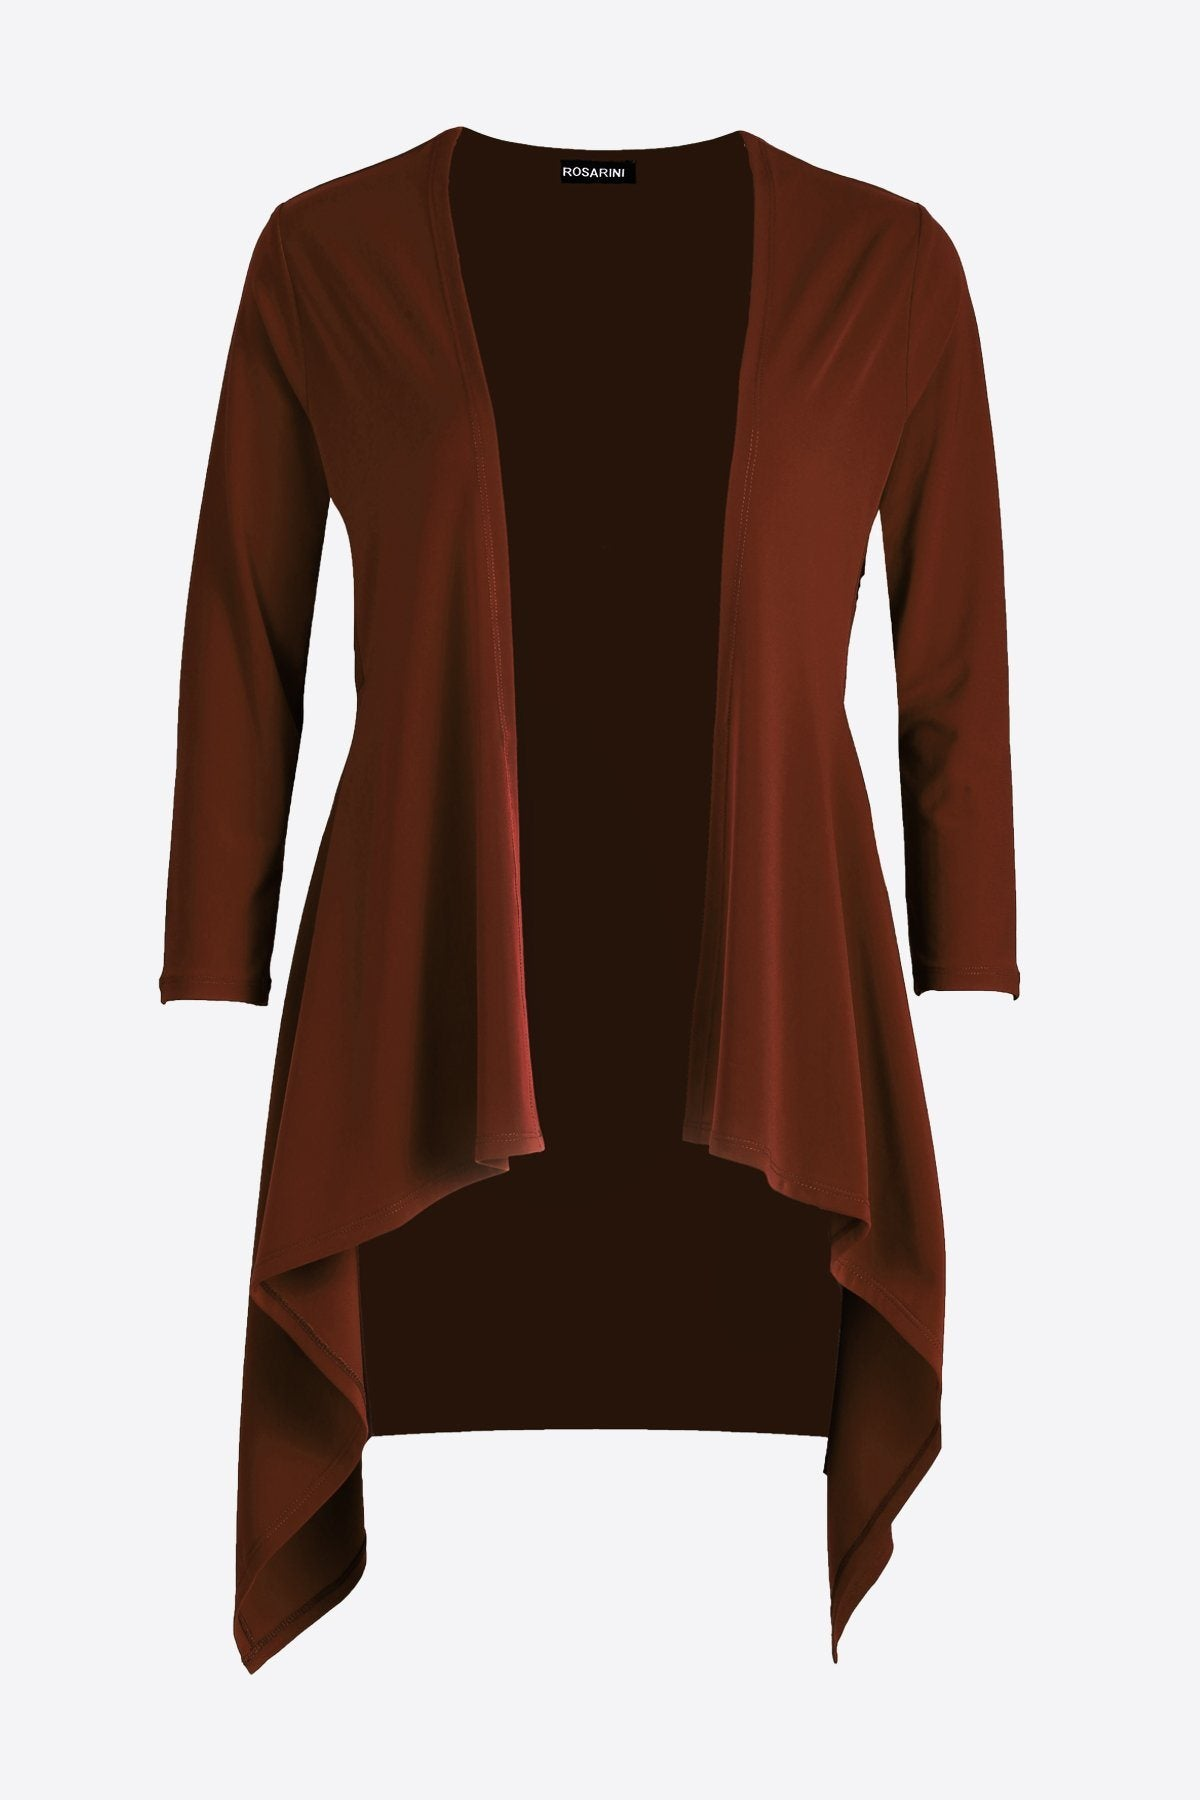 PLUS SIZE Long Flyaway Cardigan brown